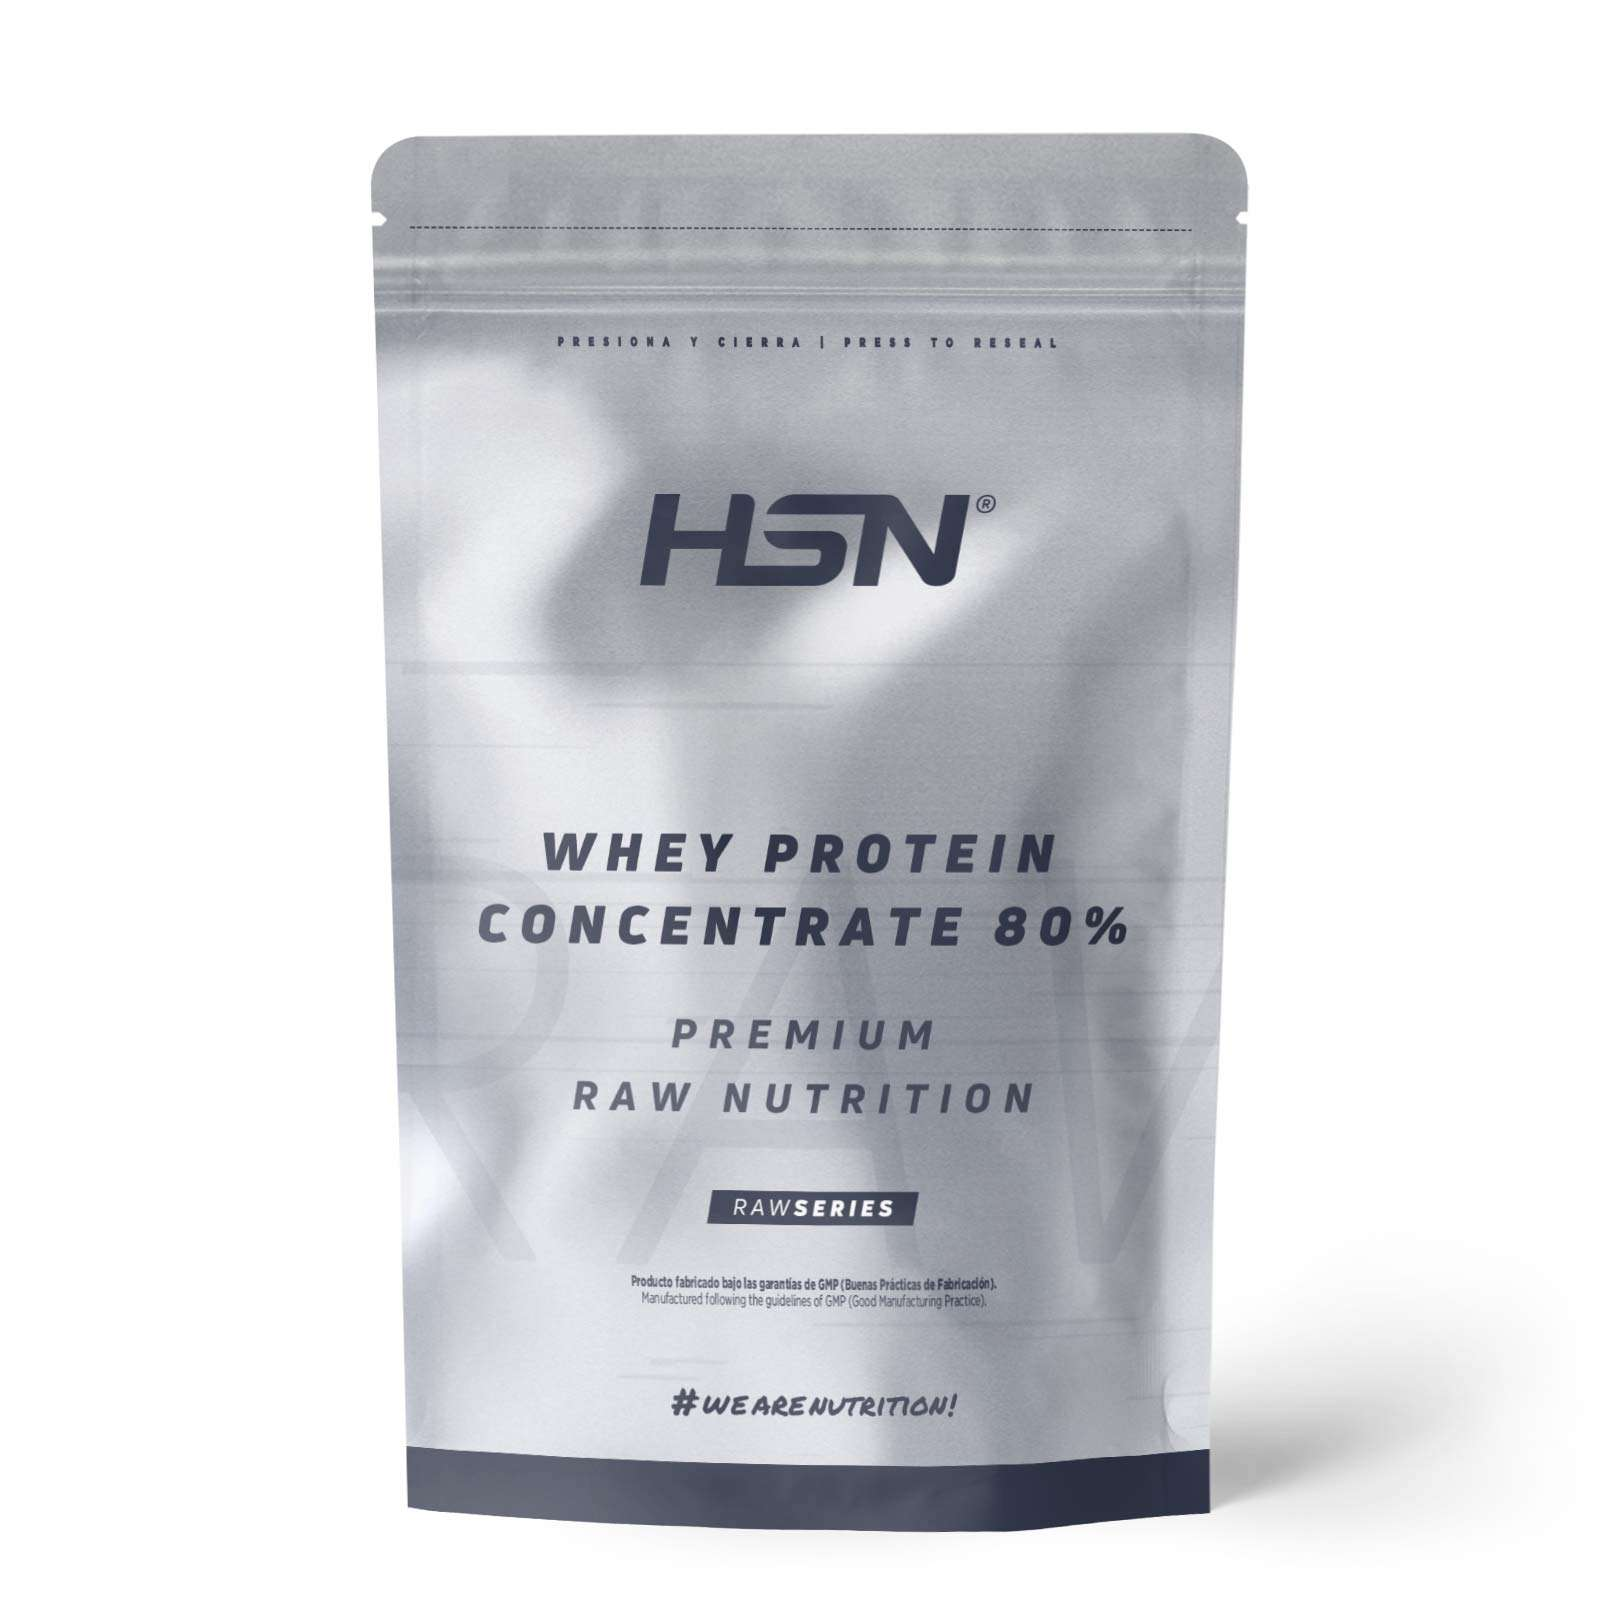 WHEY PROTEIN CONCENTRATE 80% 2.0